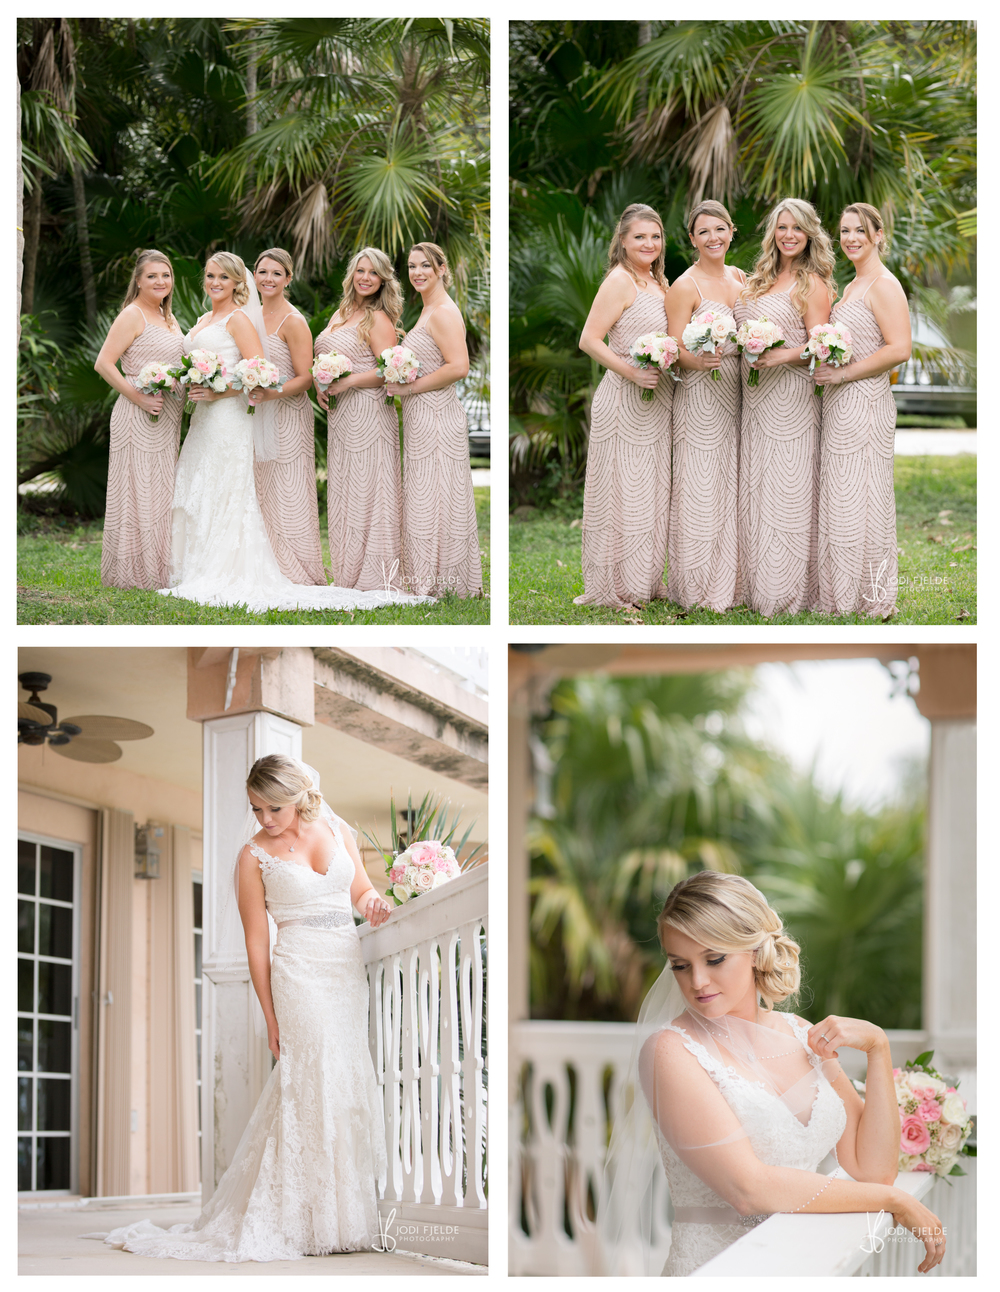 Cocconut_Cove_&_ Marina_ wedding_Kalie_and_Kurt 18.jpg